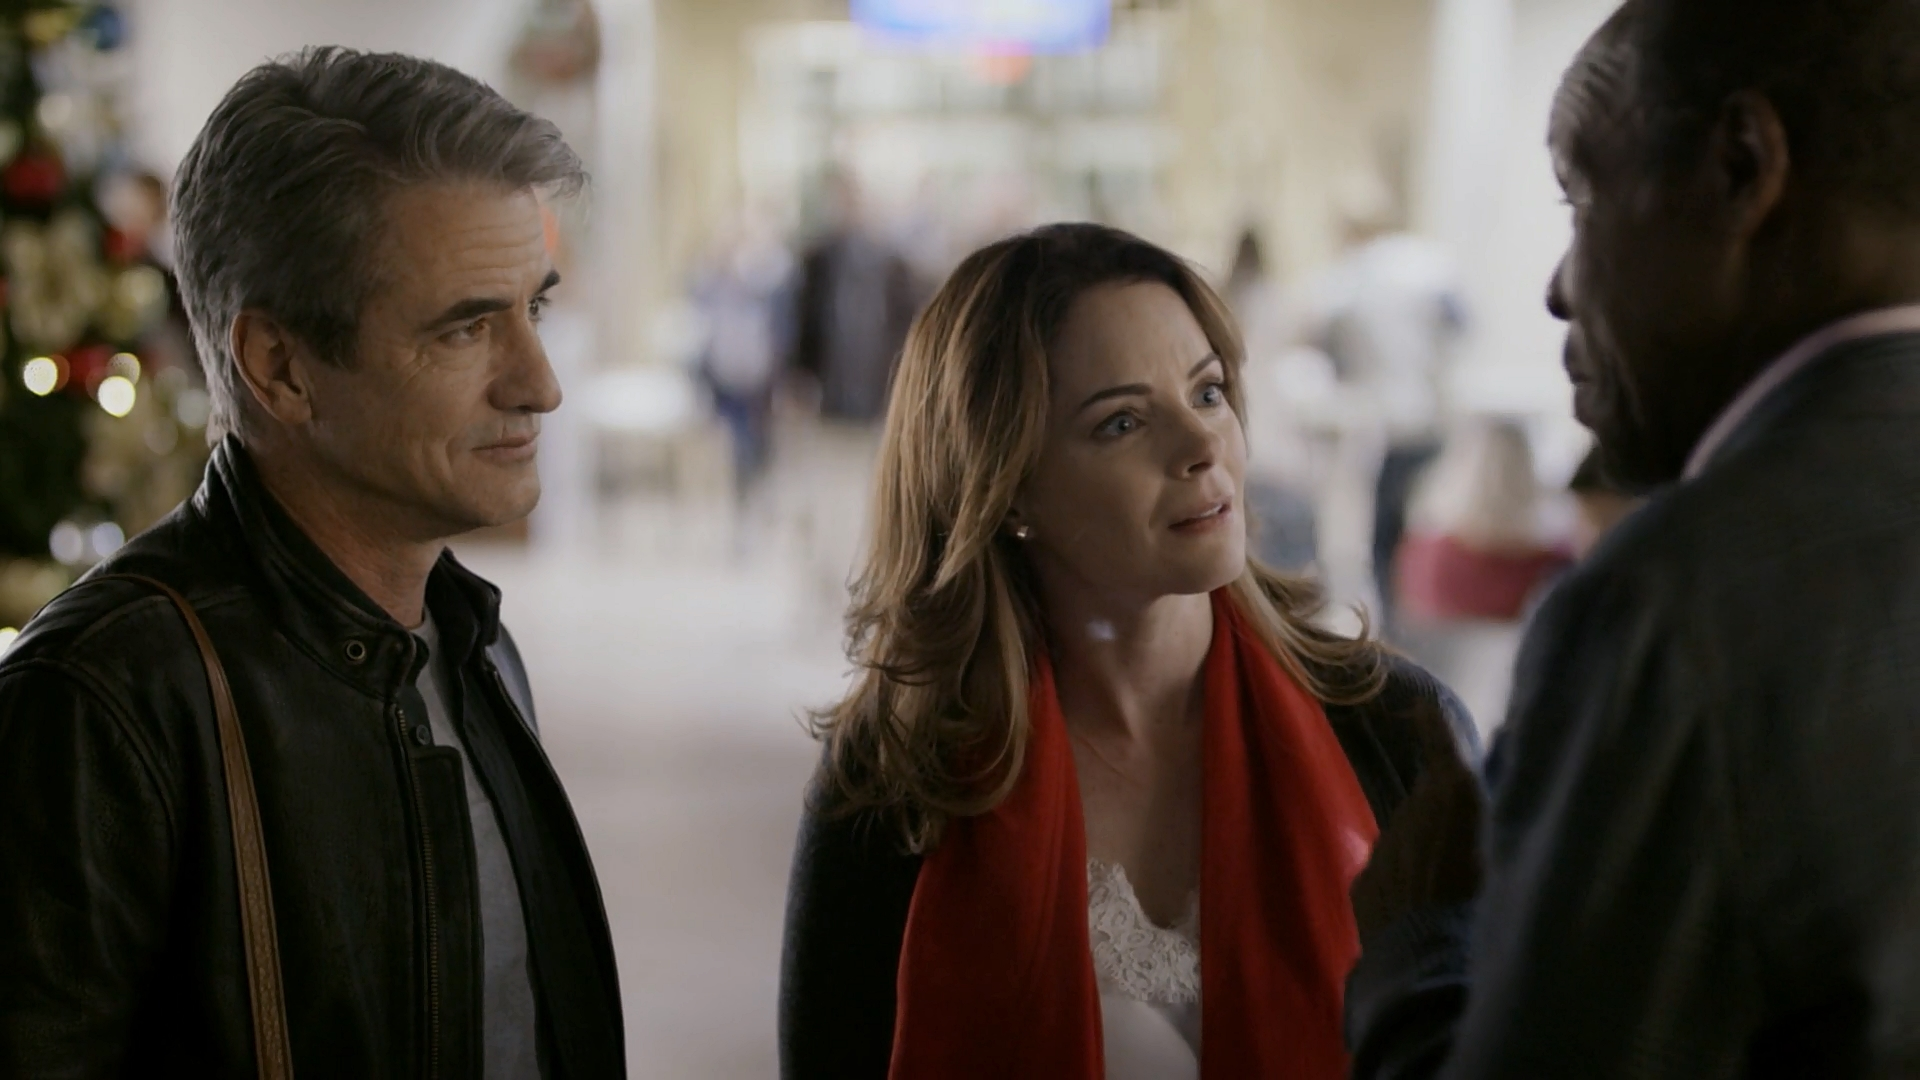 Danny Glover, Dermot Mulroney, and Kimberly Williams-Paisley in The Christmas Train (2017)